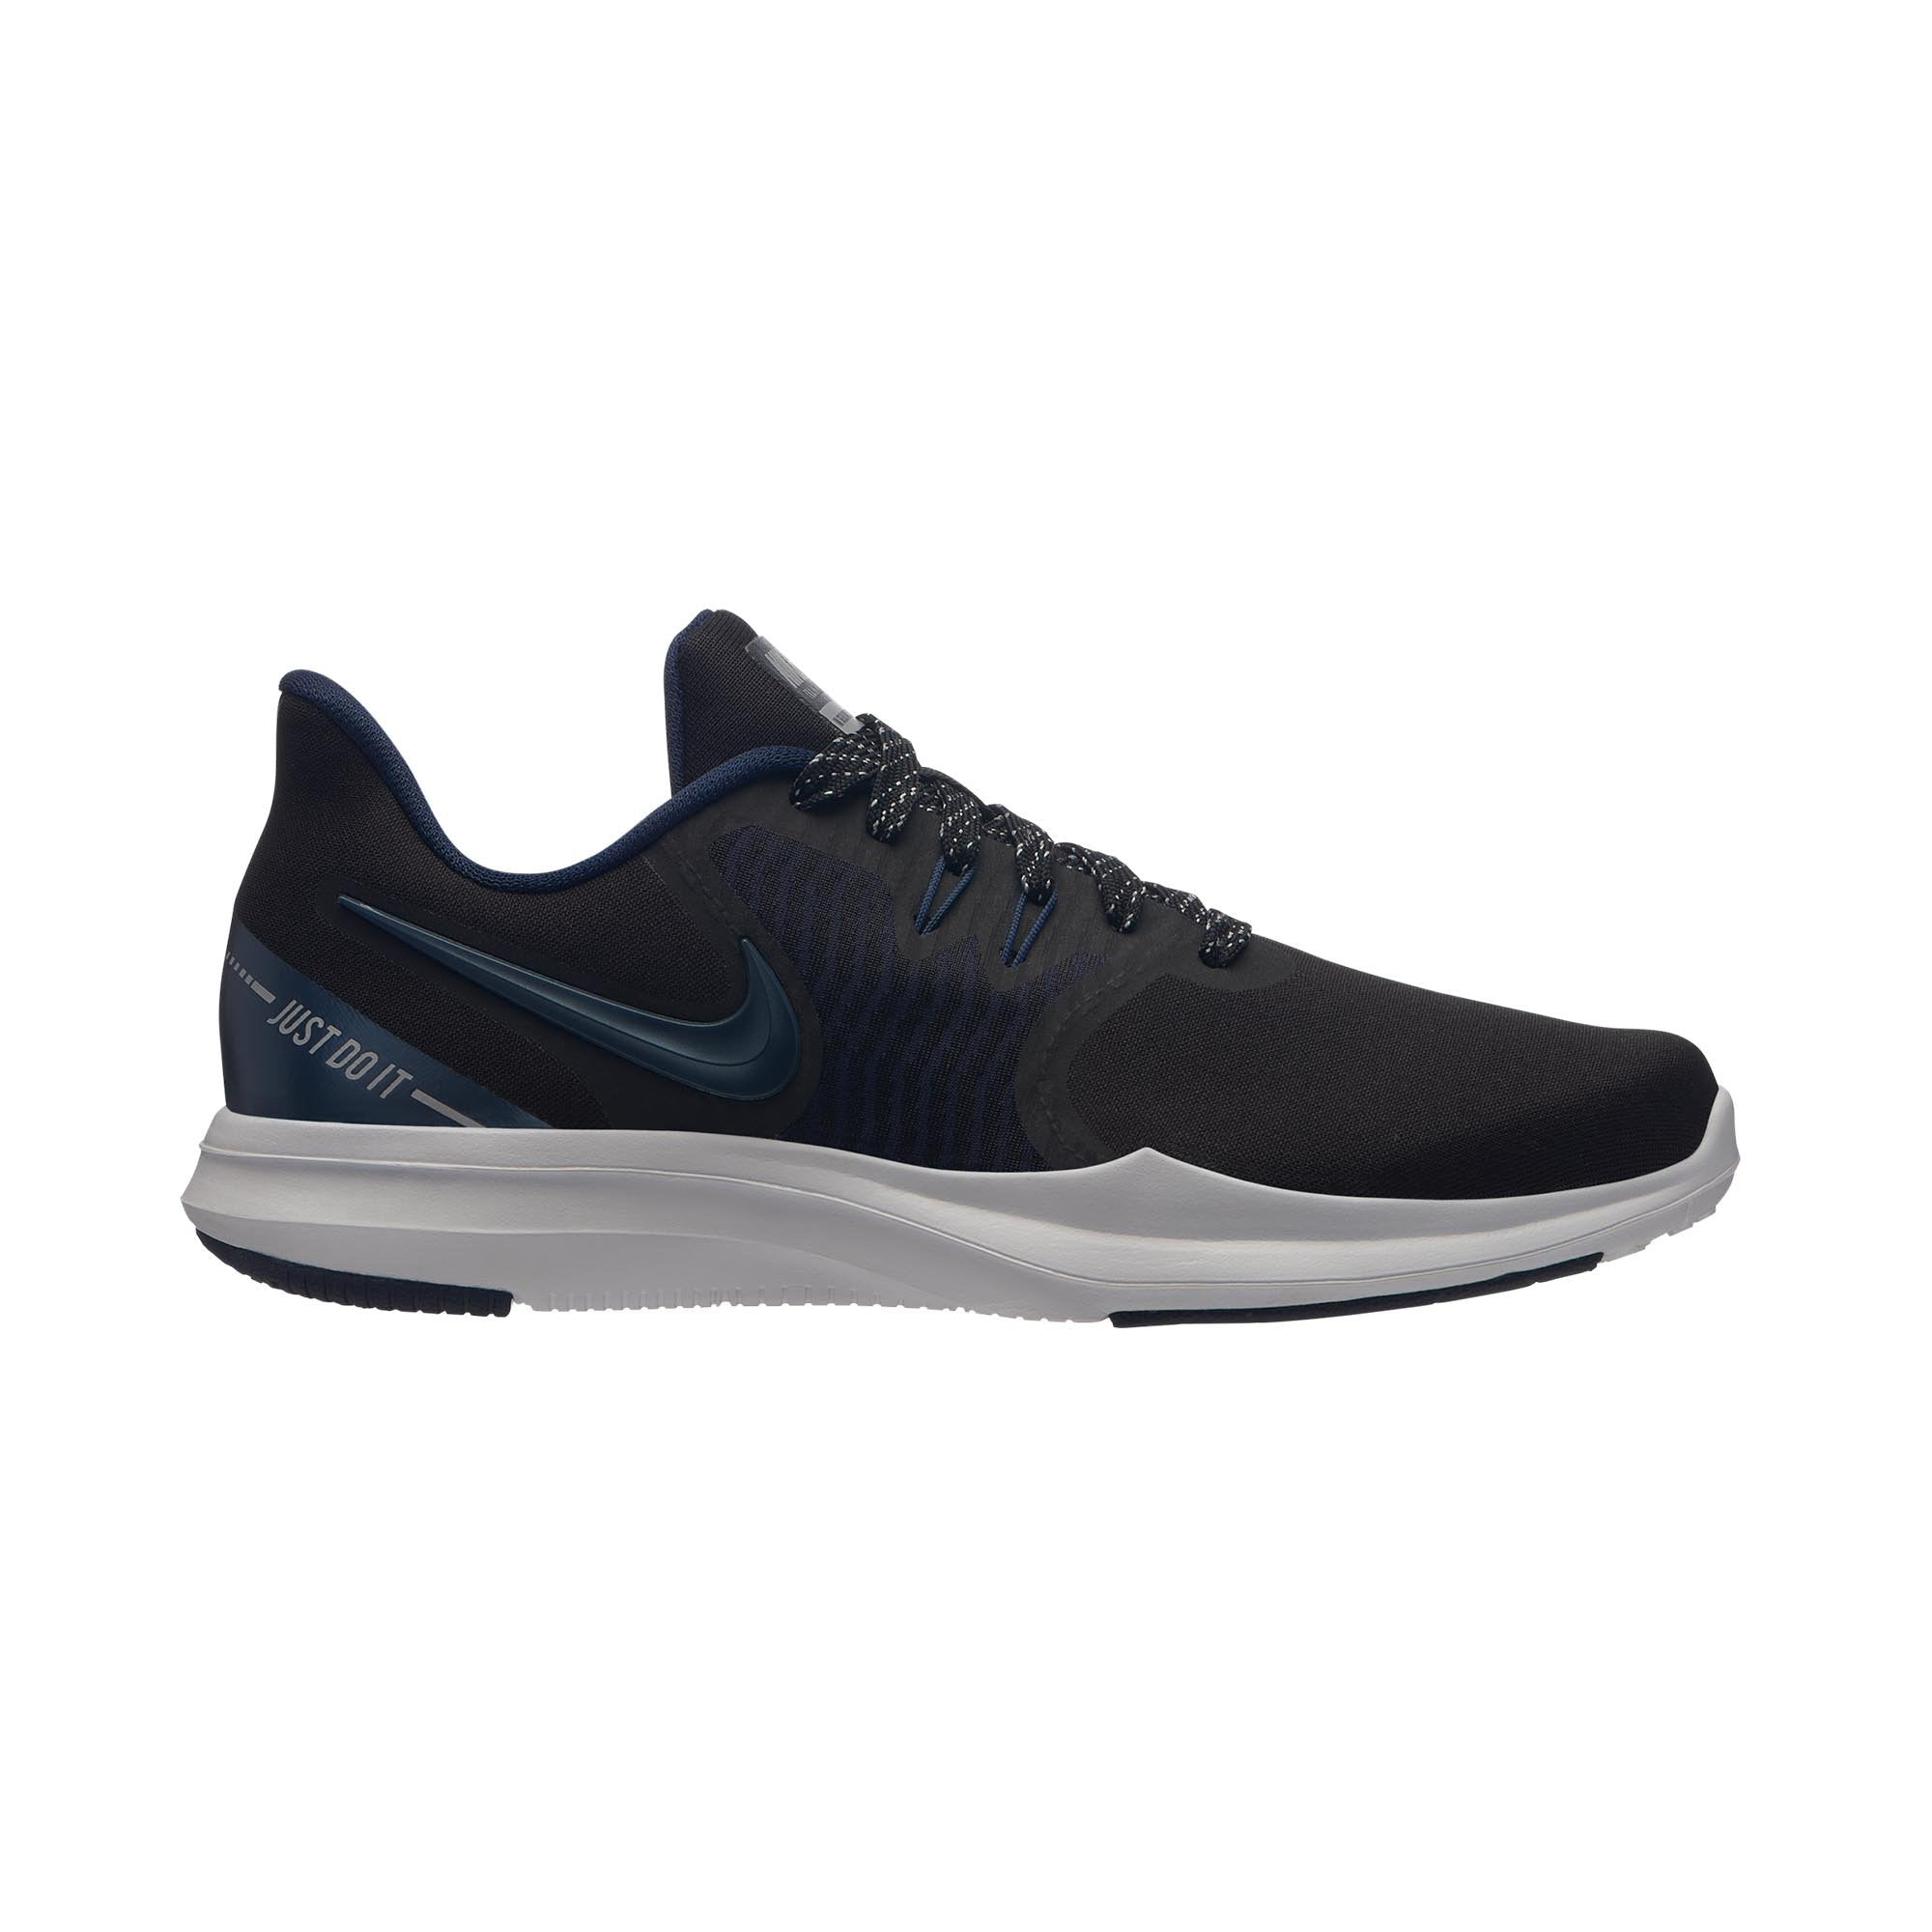 huge discount fb4f8 10069 Buy NIKE Women In-Season Tr 8 Training Shoes, Black Mtlc Armory Nvy College  Navy Online in Singapore   Royal Sporting House